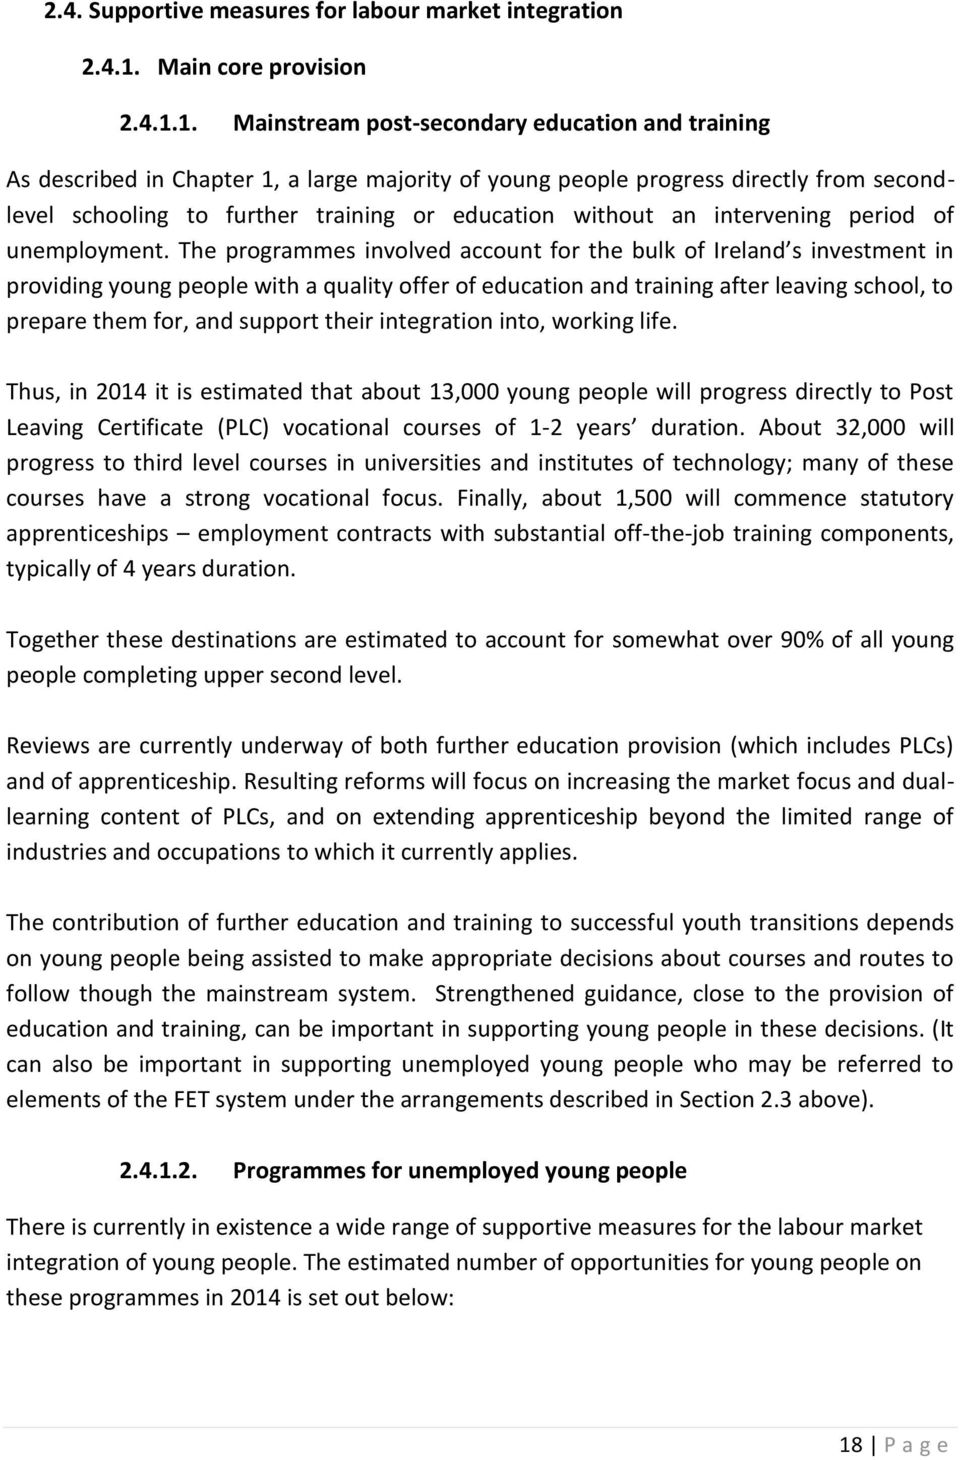 1. Mainstream post-secondary education and training As described in Chapter 1, a large majority of young people progress directly from secondlevel schooling to further training or education without